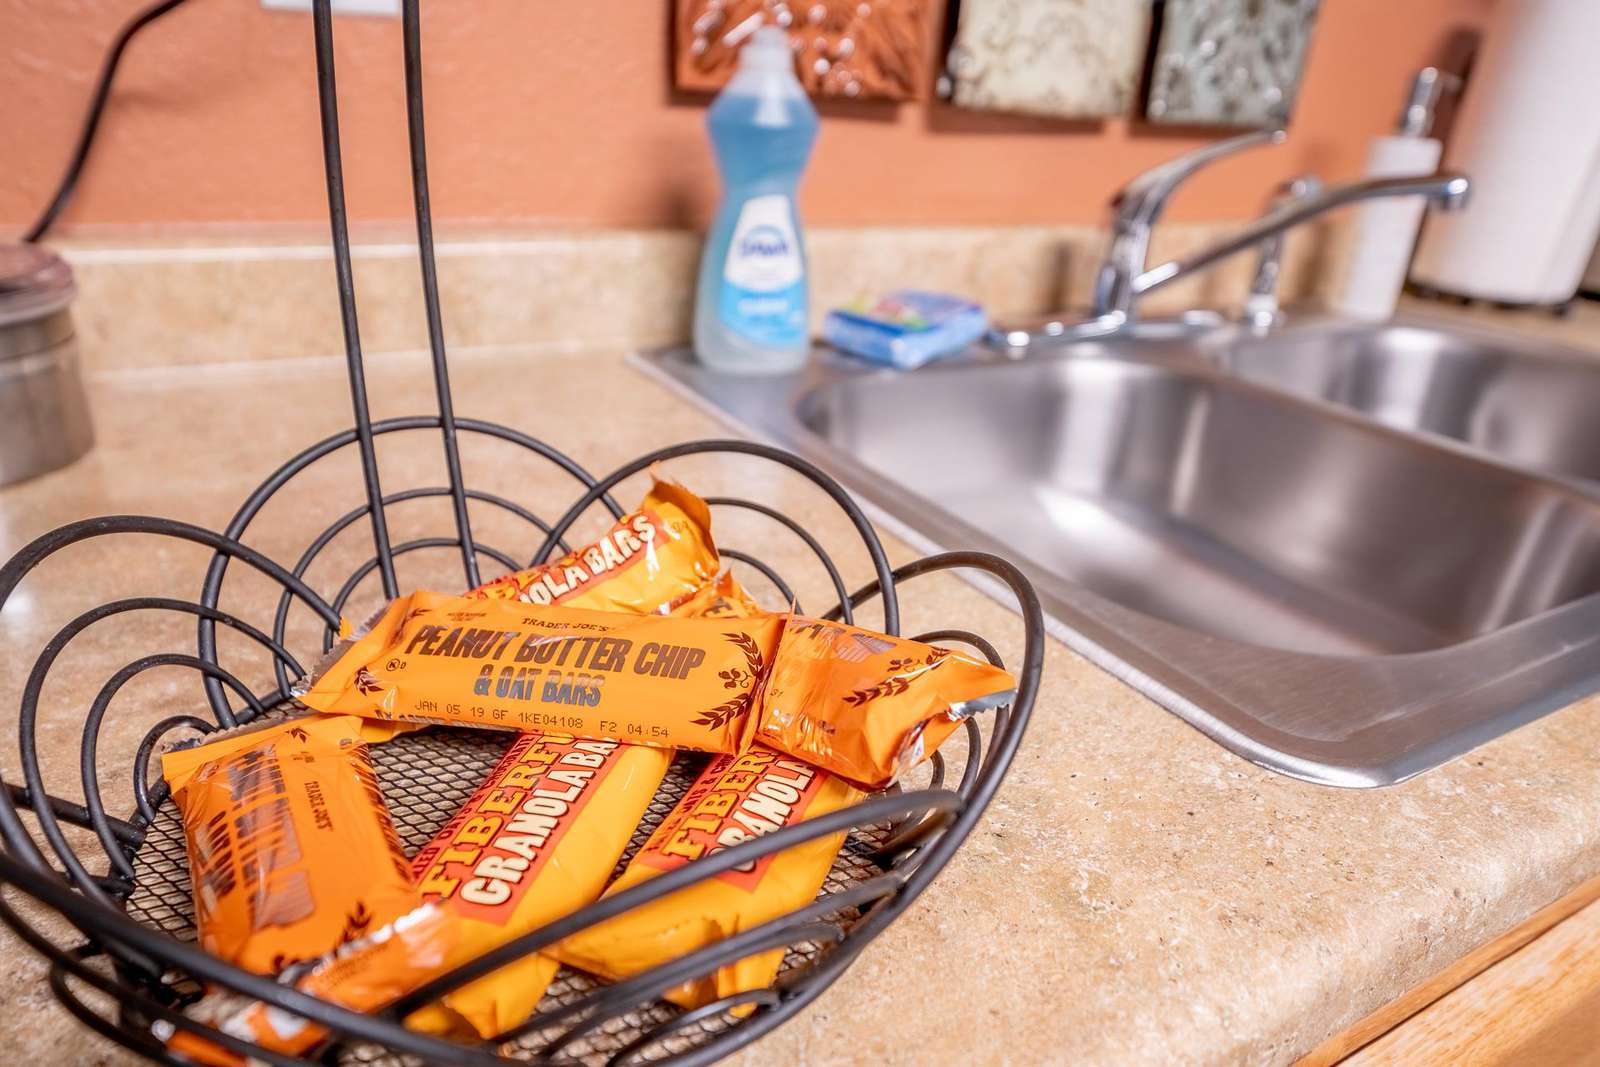 Granola bars available for use during your stay.